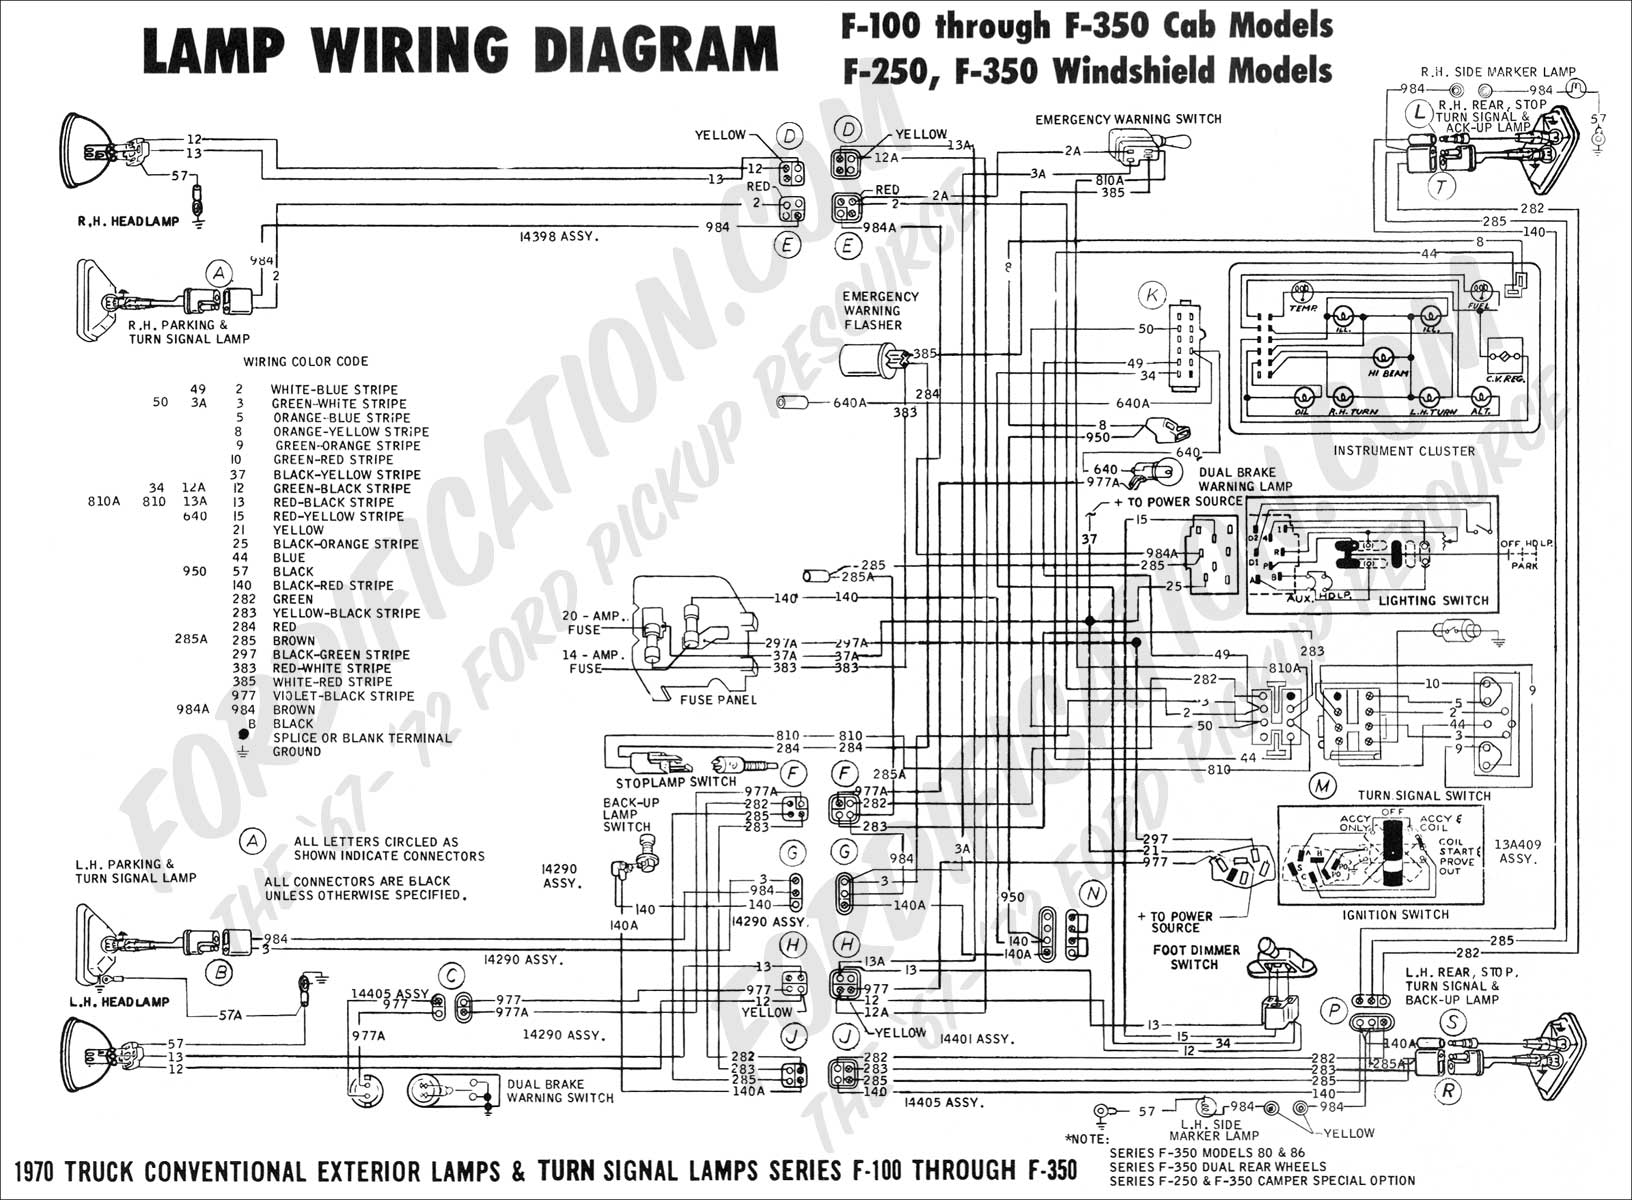 wiring diagram_70ext lights01 ford truck technical drawings and schematics section h wiring 1996 ford explorer ignition wiring diagram at readyjetset.co